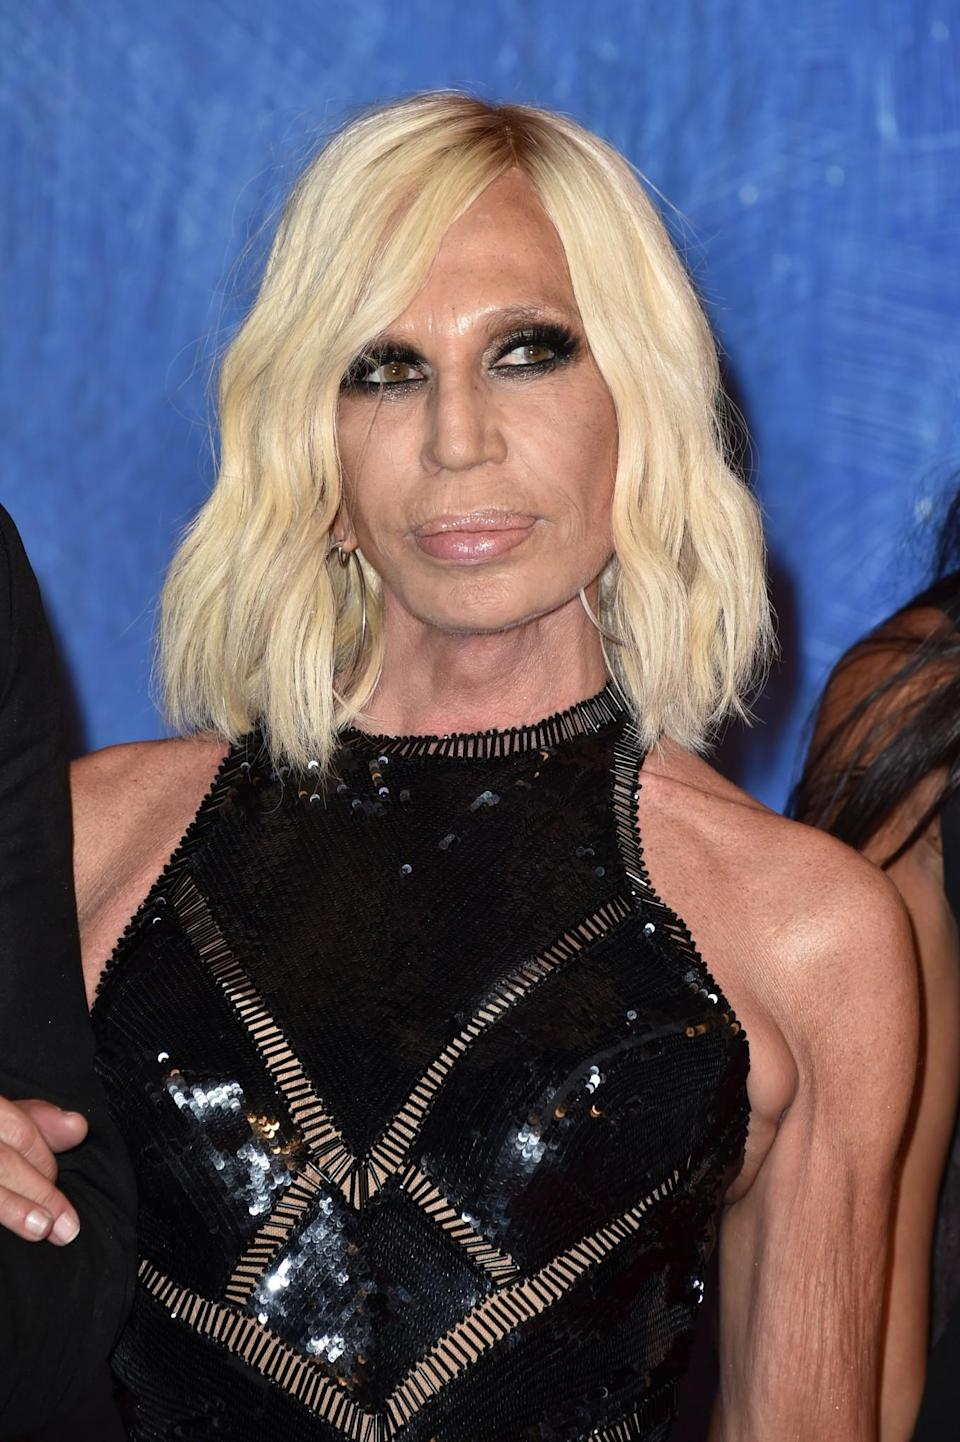 <p>Her most recent public appearance showed a shiny face (which could be the sign of a Botox overload). Other than that, Donatella's lips appear to be reducing to normal size and her overall face looks more natural. <i>[Photo: Getty]</i> </p>